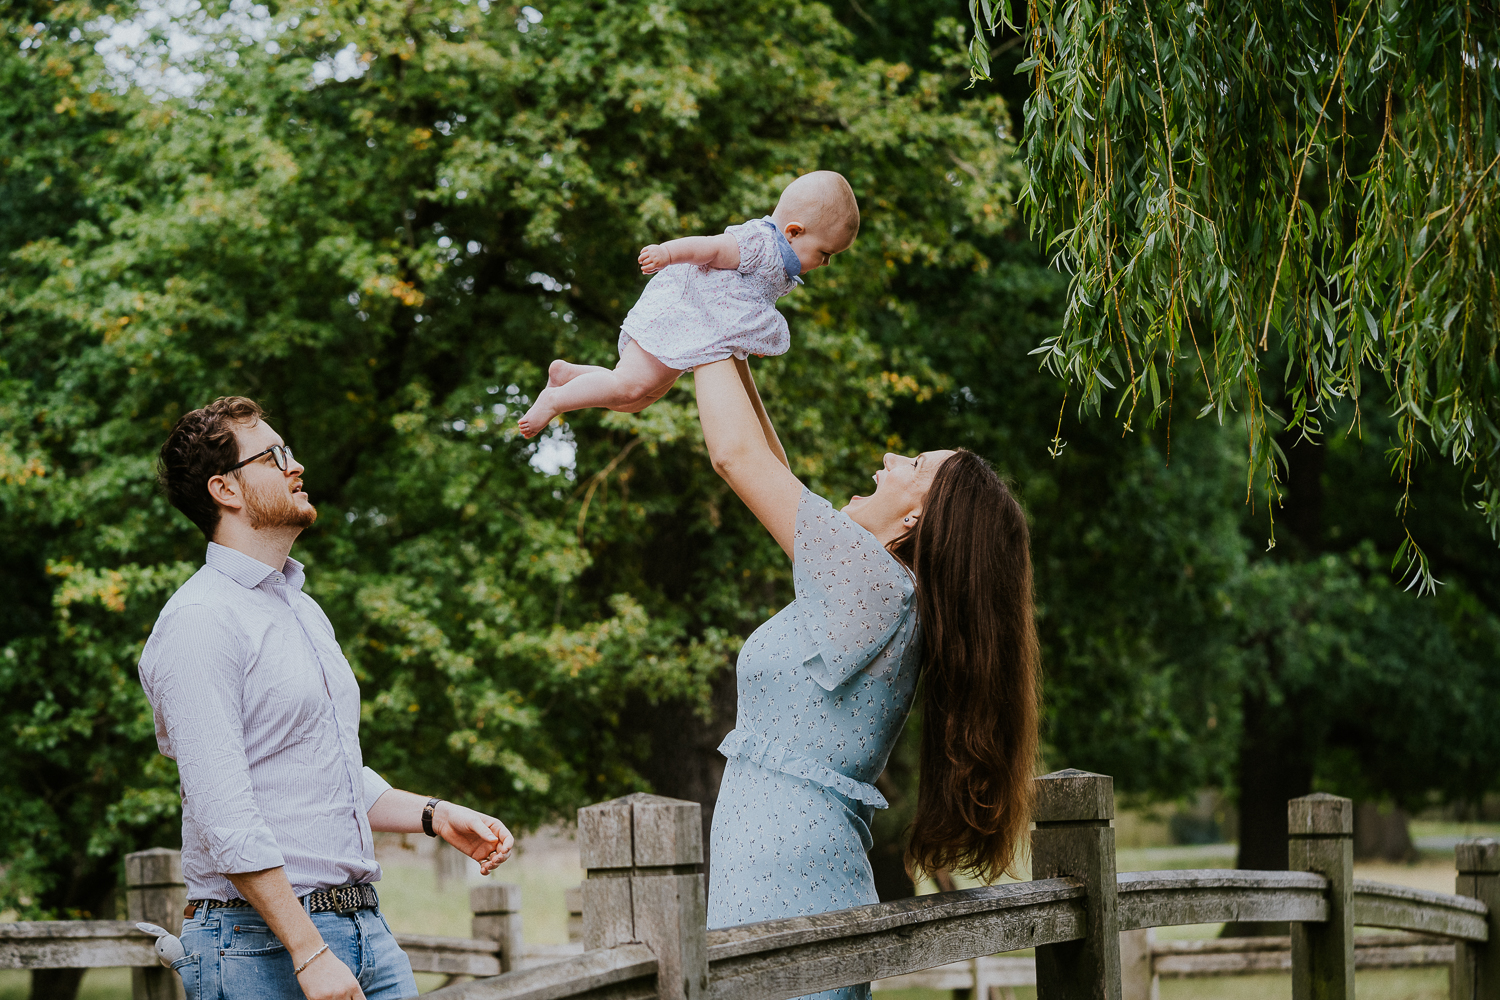 SPRING MINI PHOTO SESSIONS FAMILY ON BRIDGE IN RICHMOND PARK IN SUMMER HOLDING BABY IN AIR